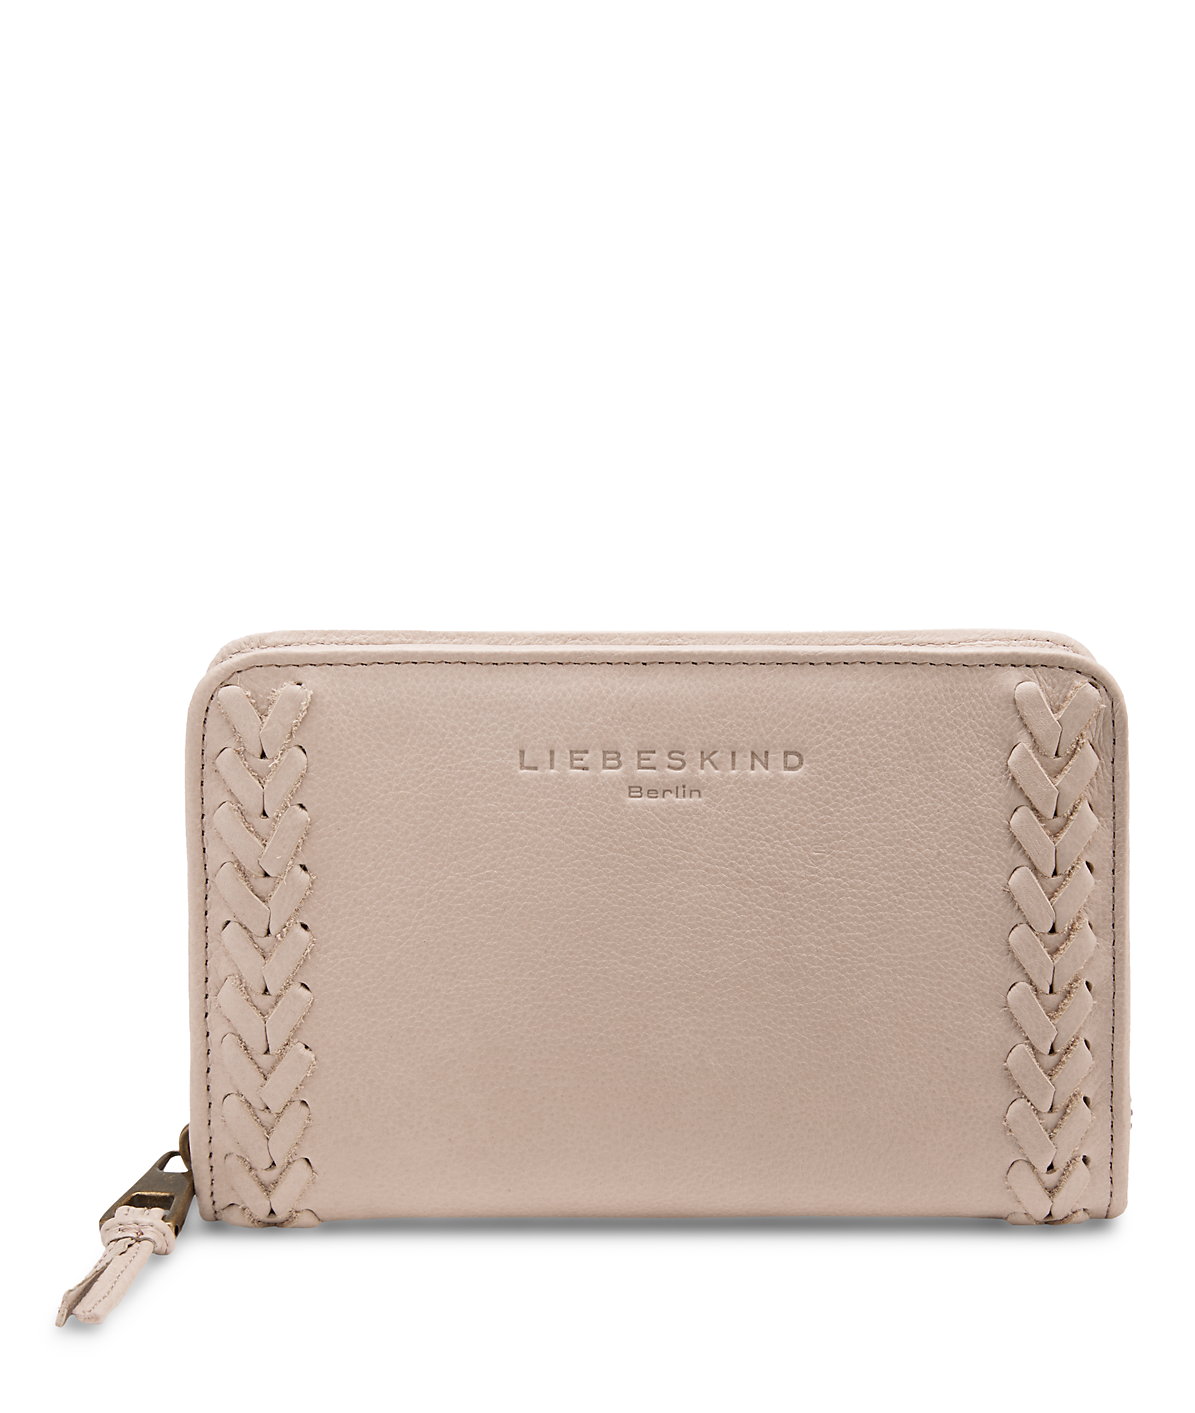 Nora wallet from liebeskind